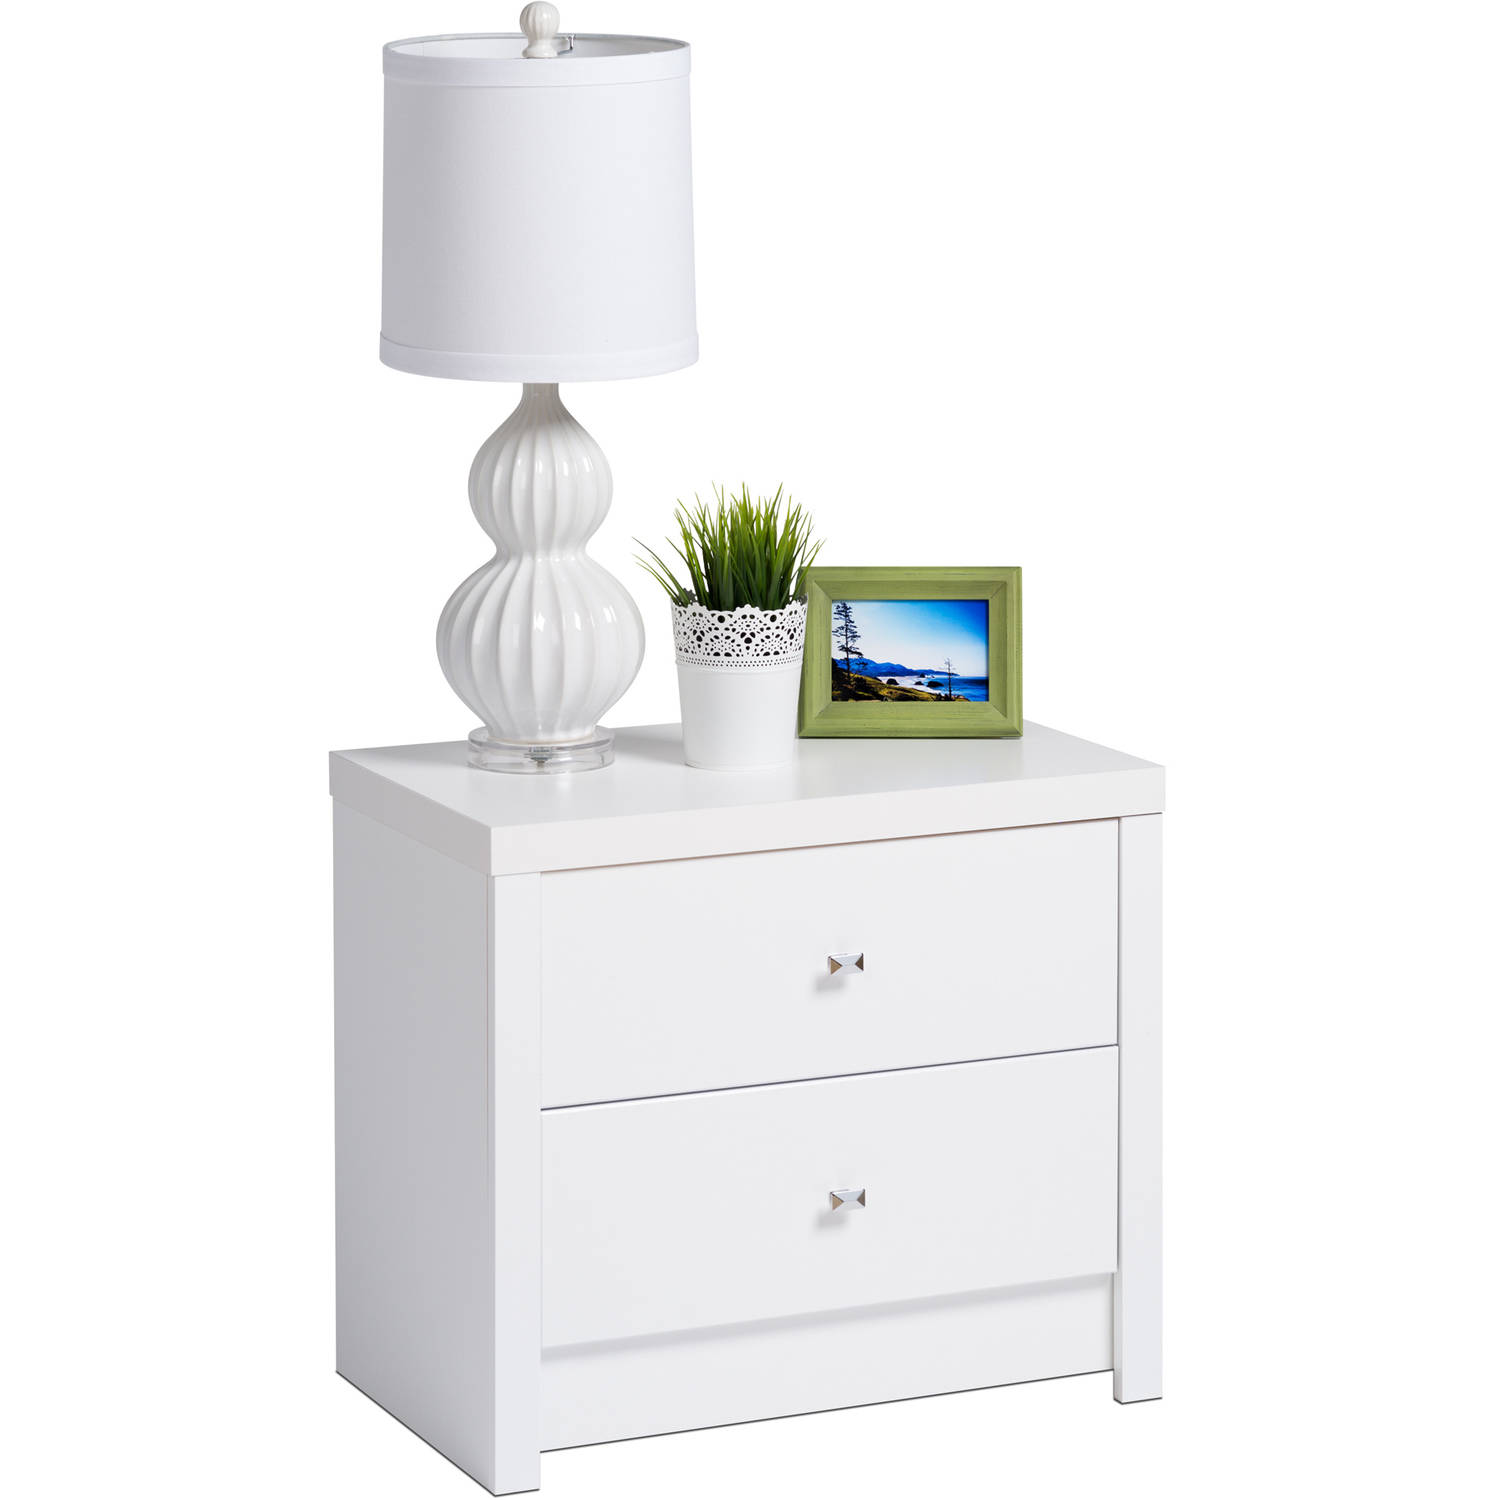 Prepac Calla 2-Drawer Nightstand by Prepac Manufacturing Ltd